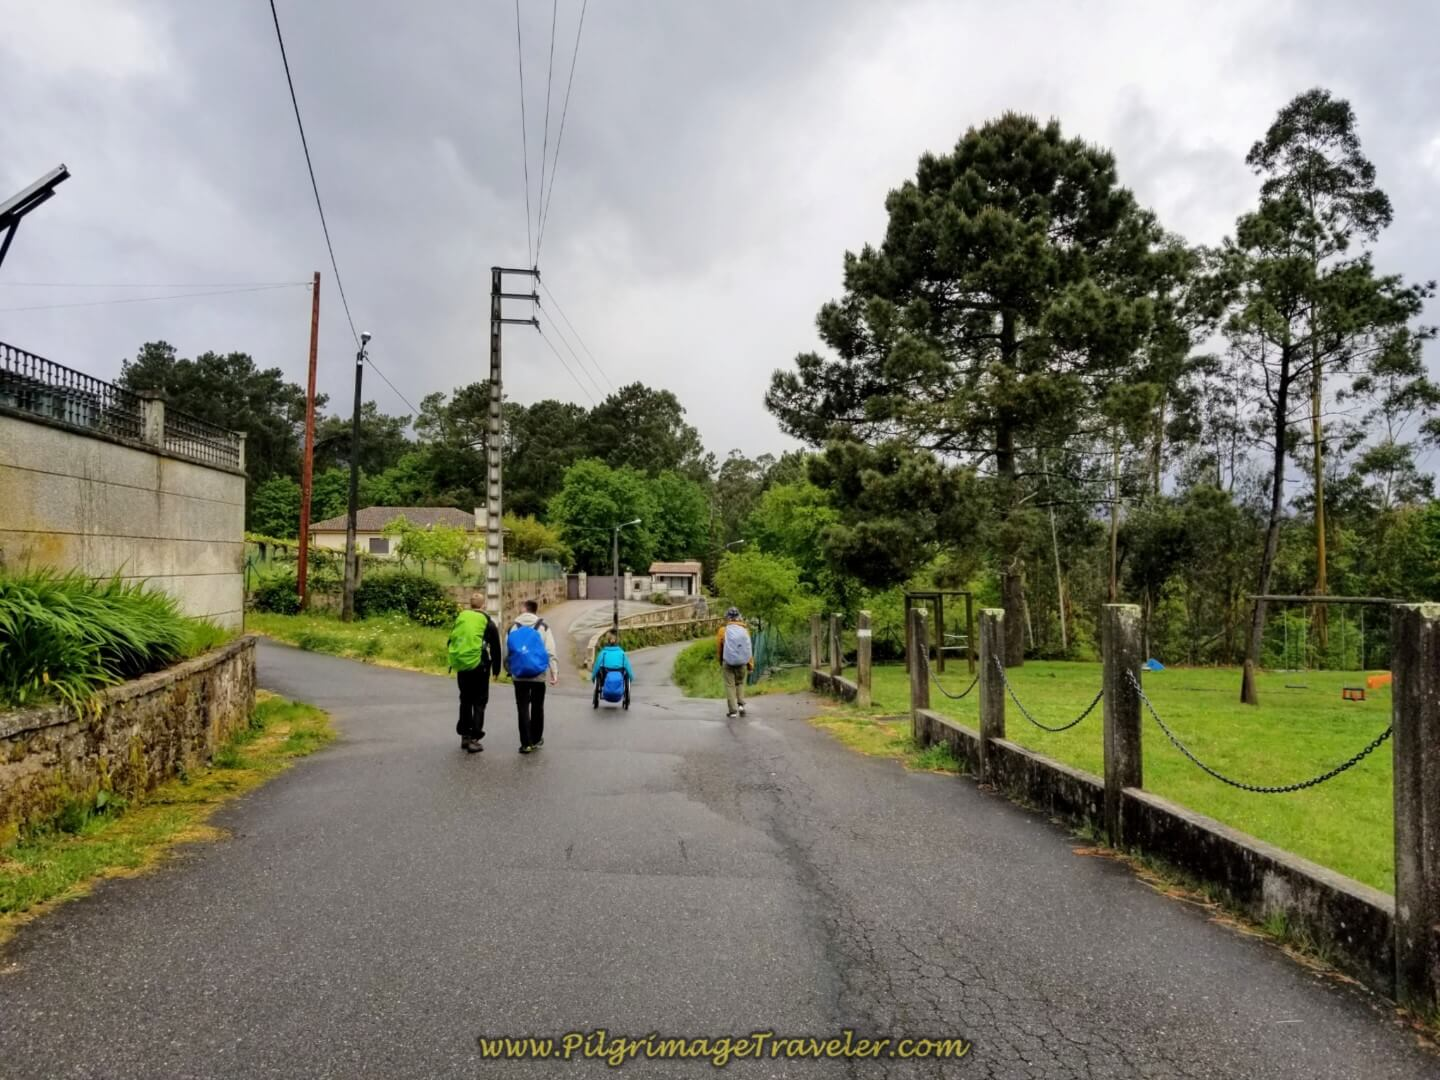 Winding Around the Town of A Magdalena on day twenty on the central route of the Portuguese Camino